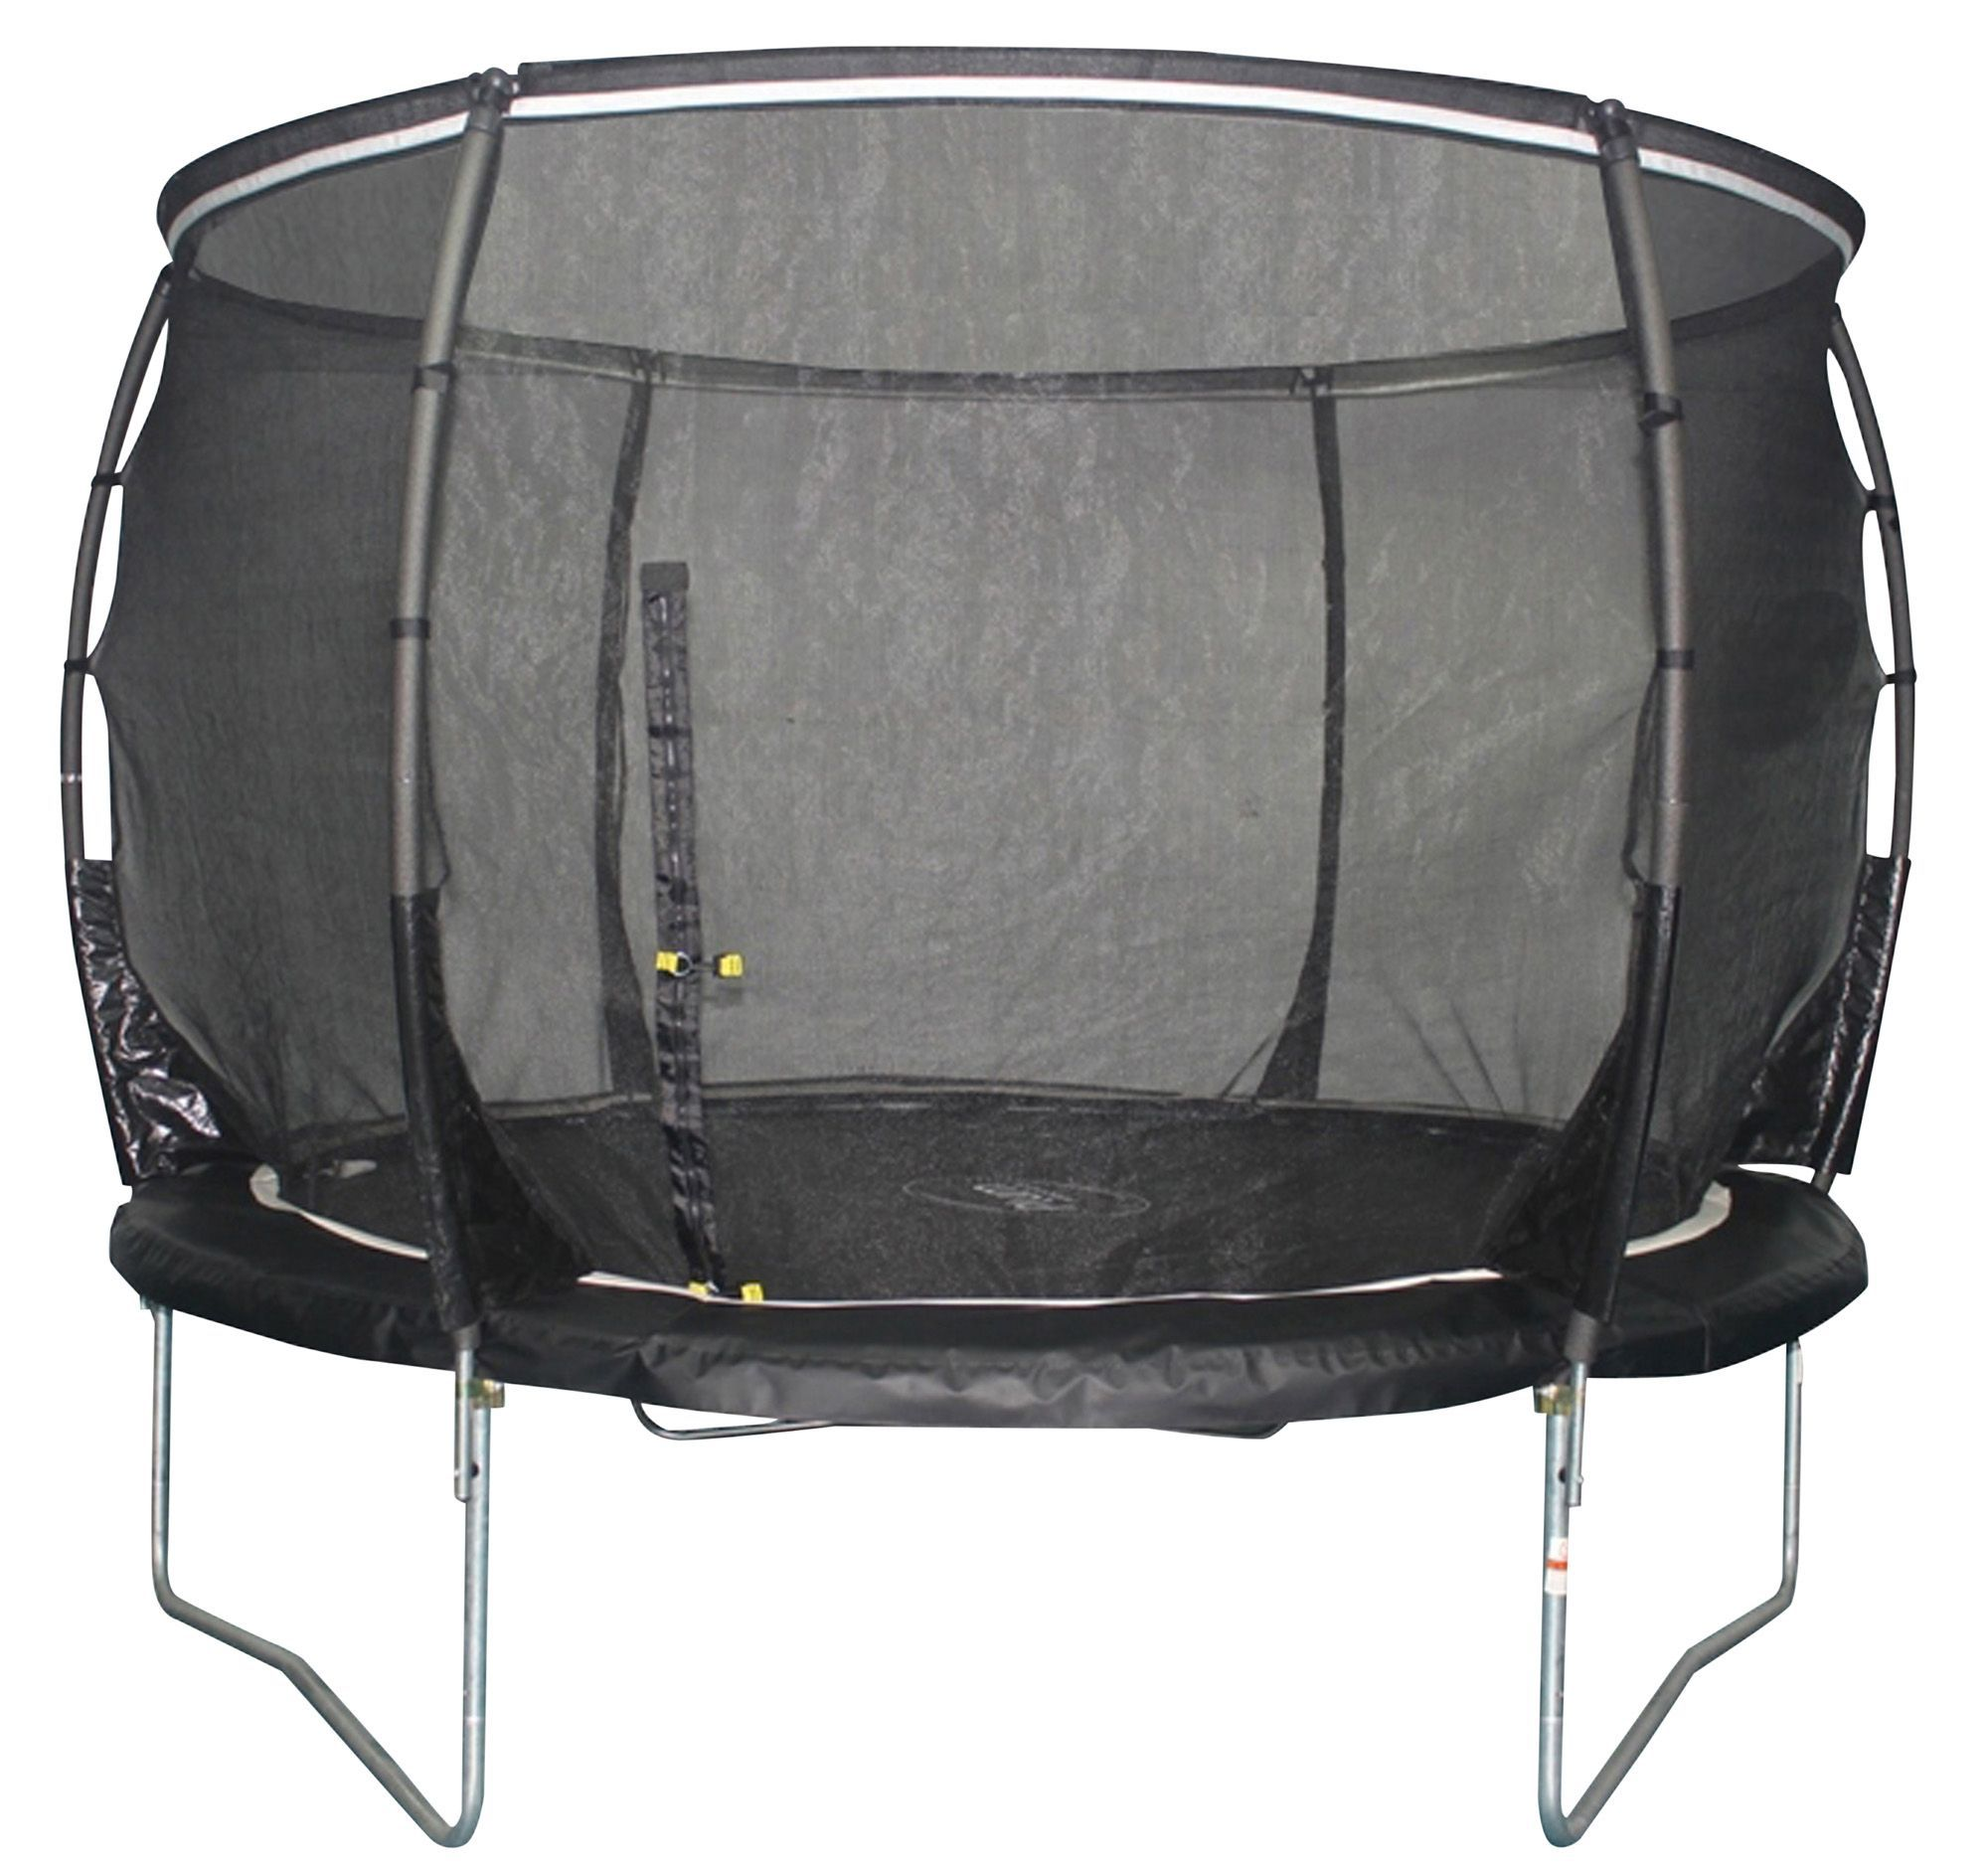 Trampoline Springs B Q: Plum Magnitude Black 8 Ft Trampoline & Enclosure